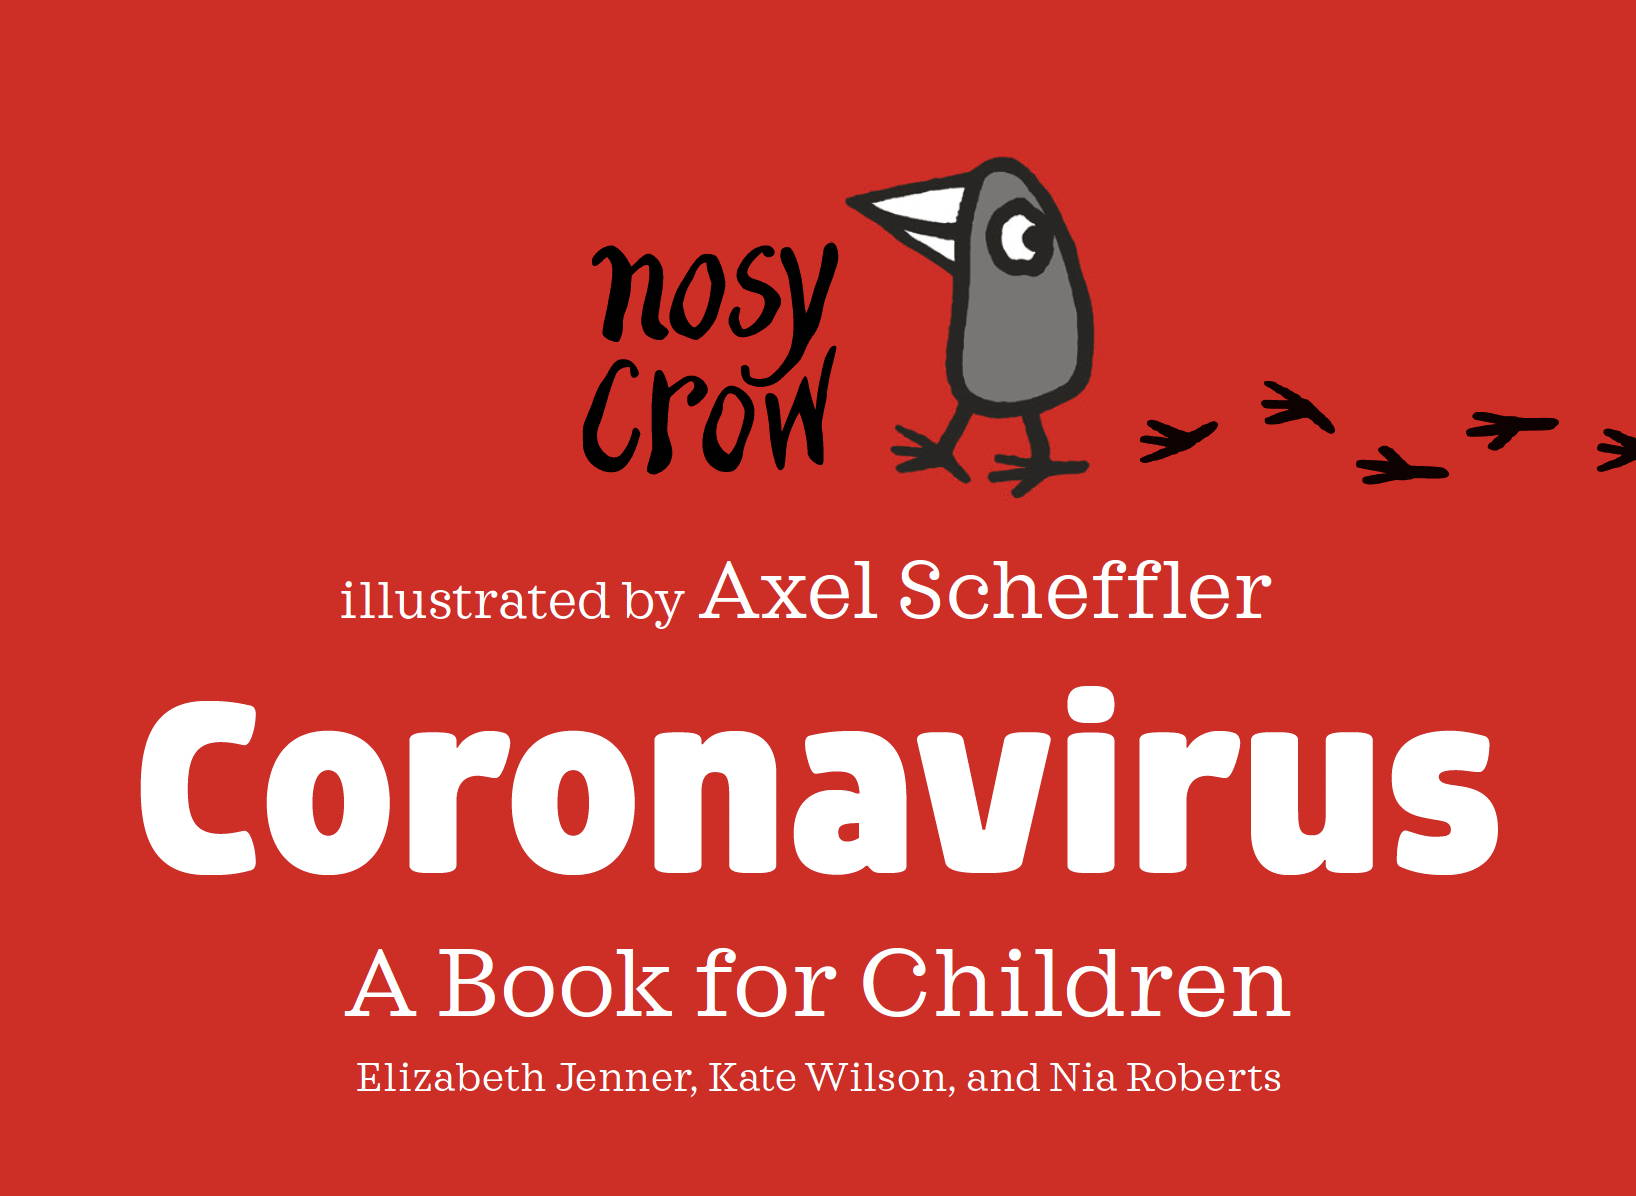 Coronavirus - A Book for Children from Nosy Crow